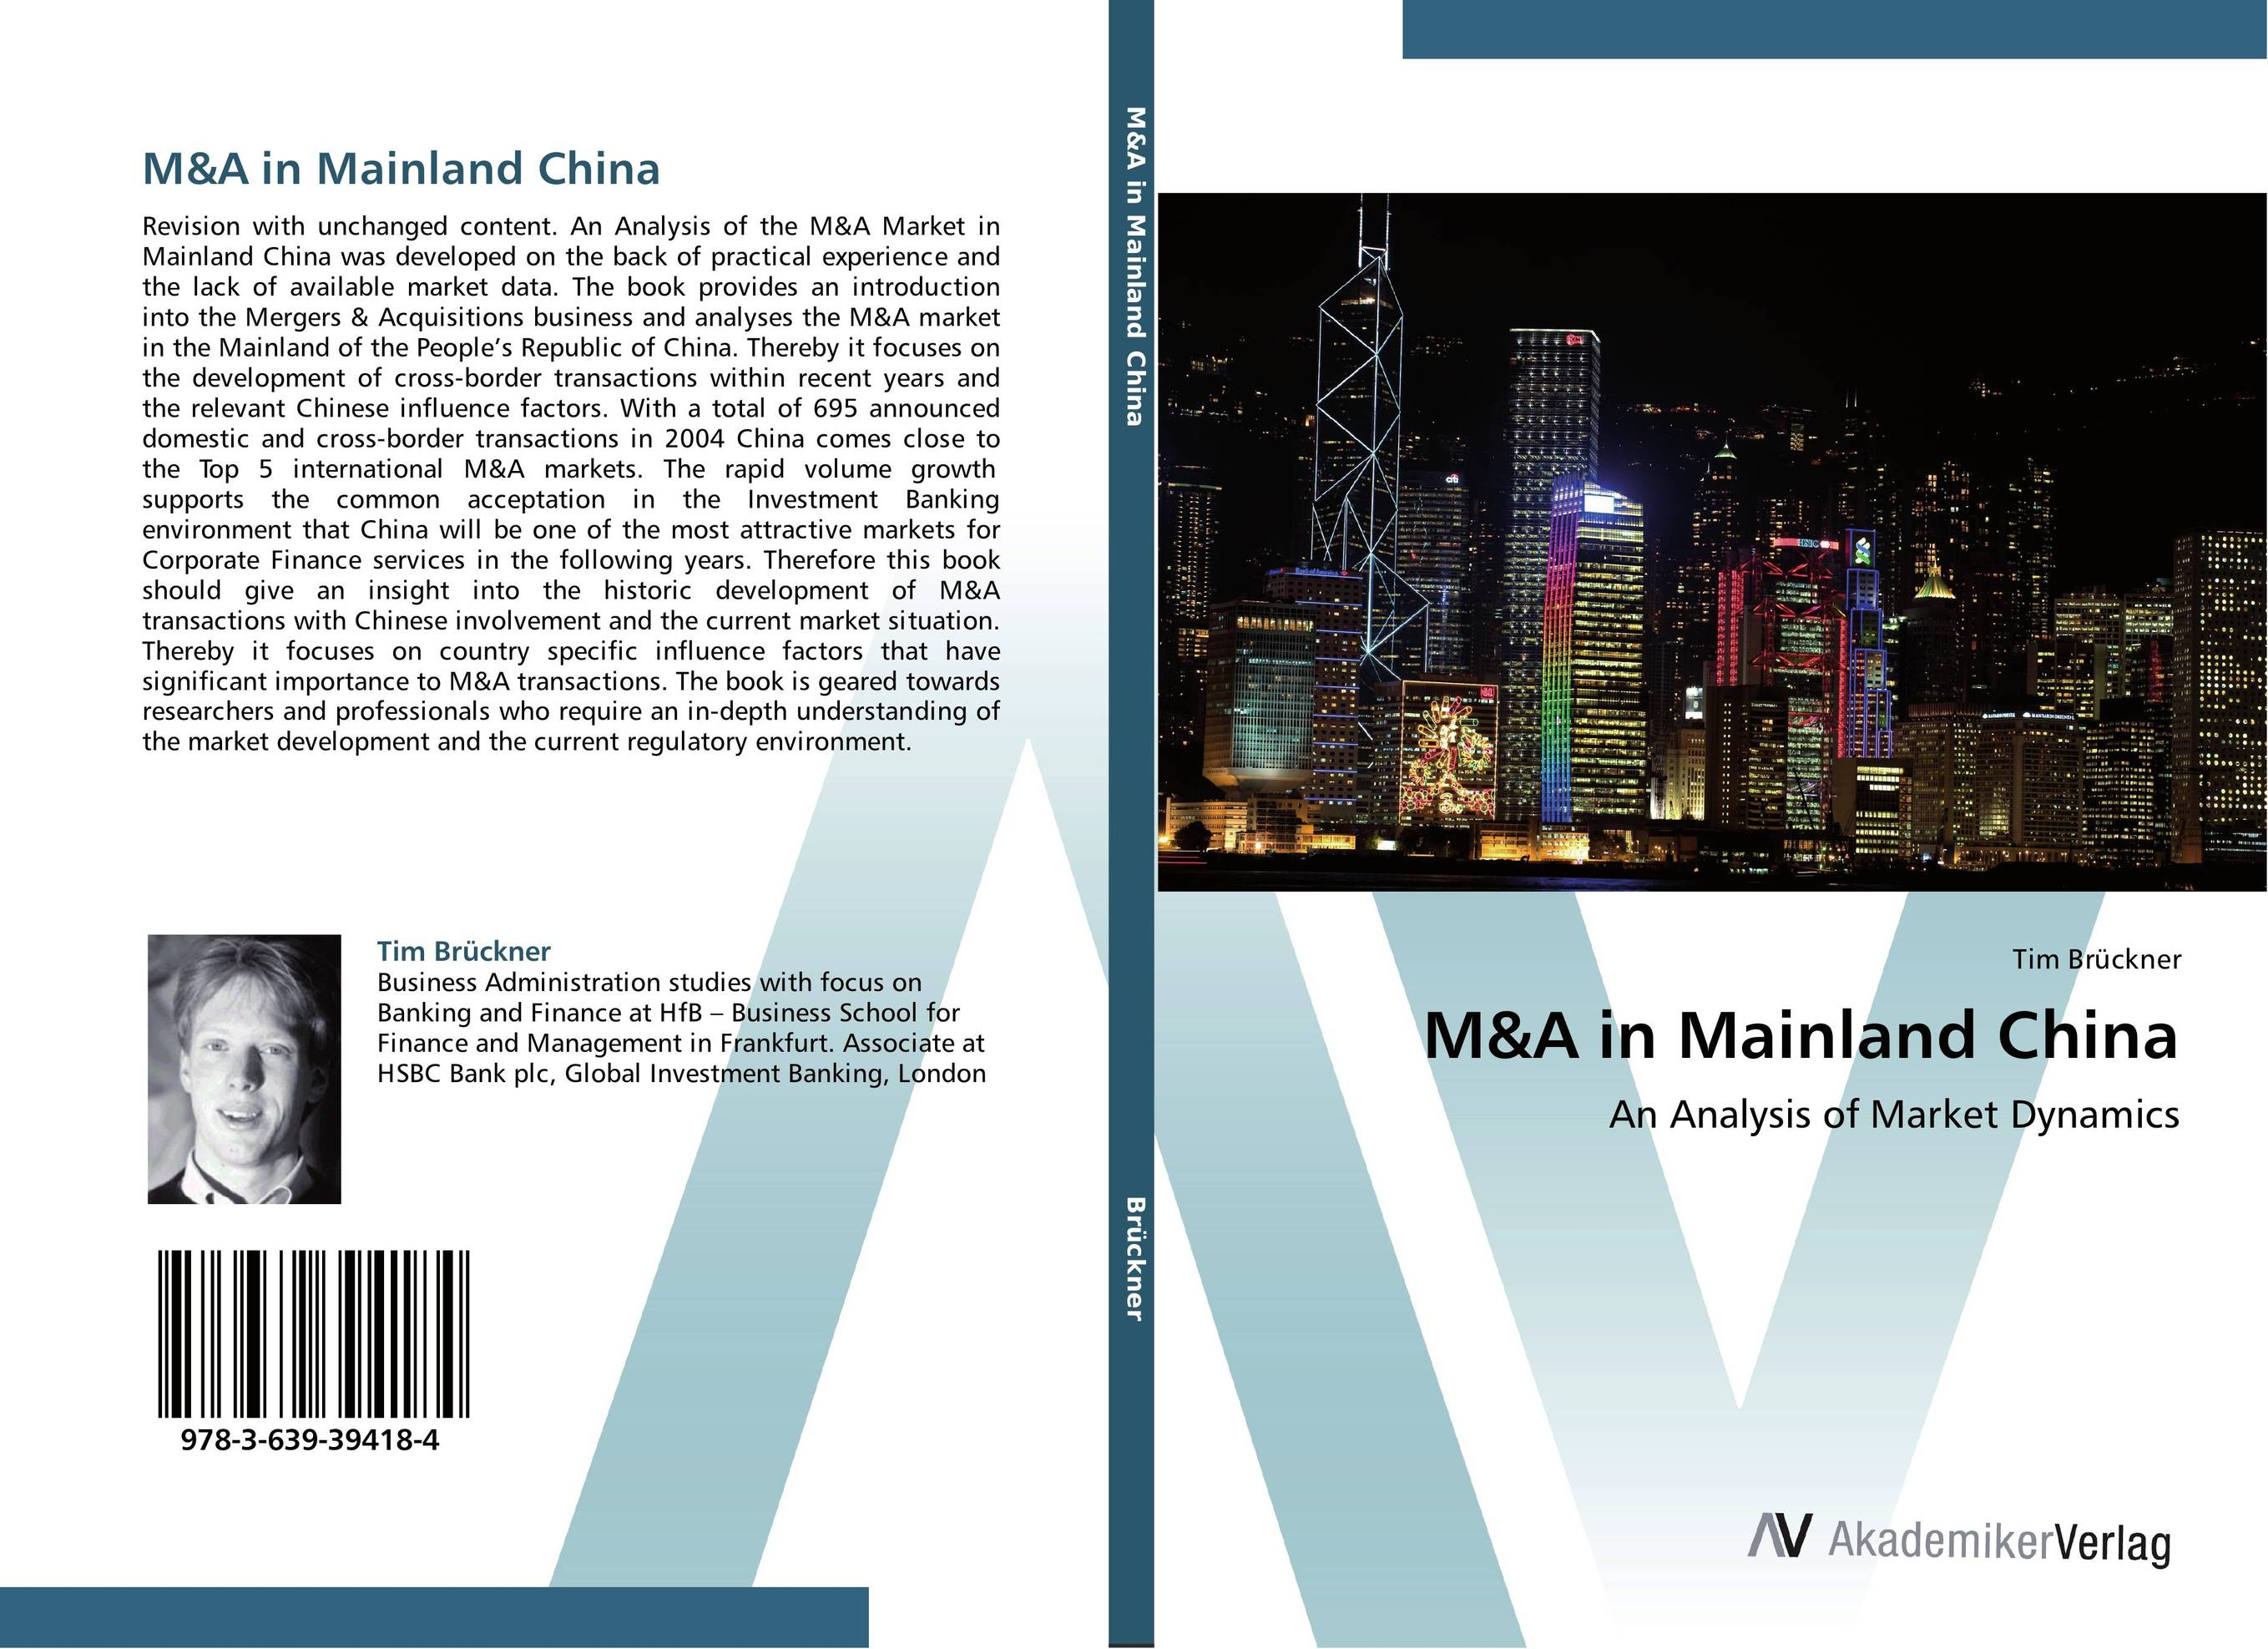 M&A in Mainland China garrett social reformers in urban china – the chinese y m c a